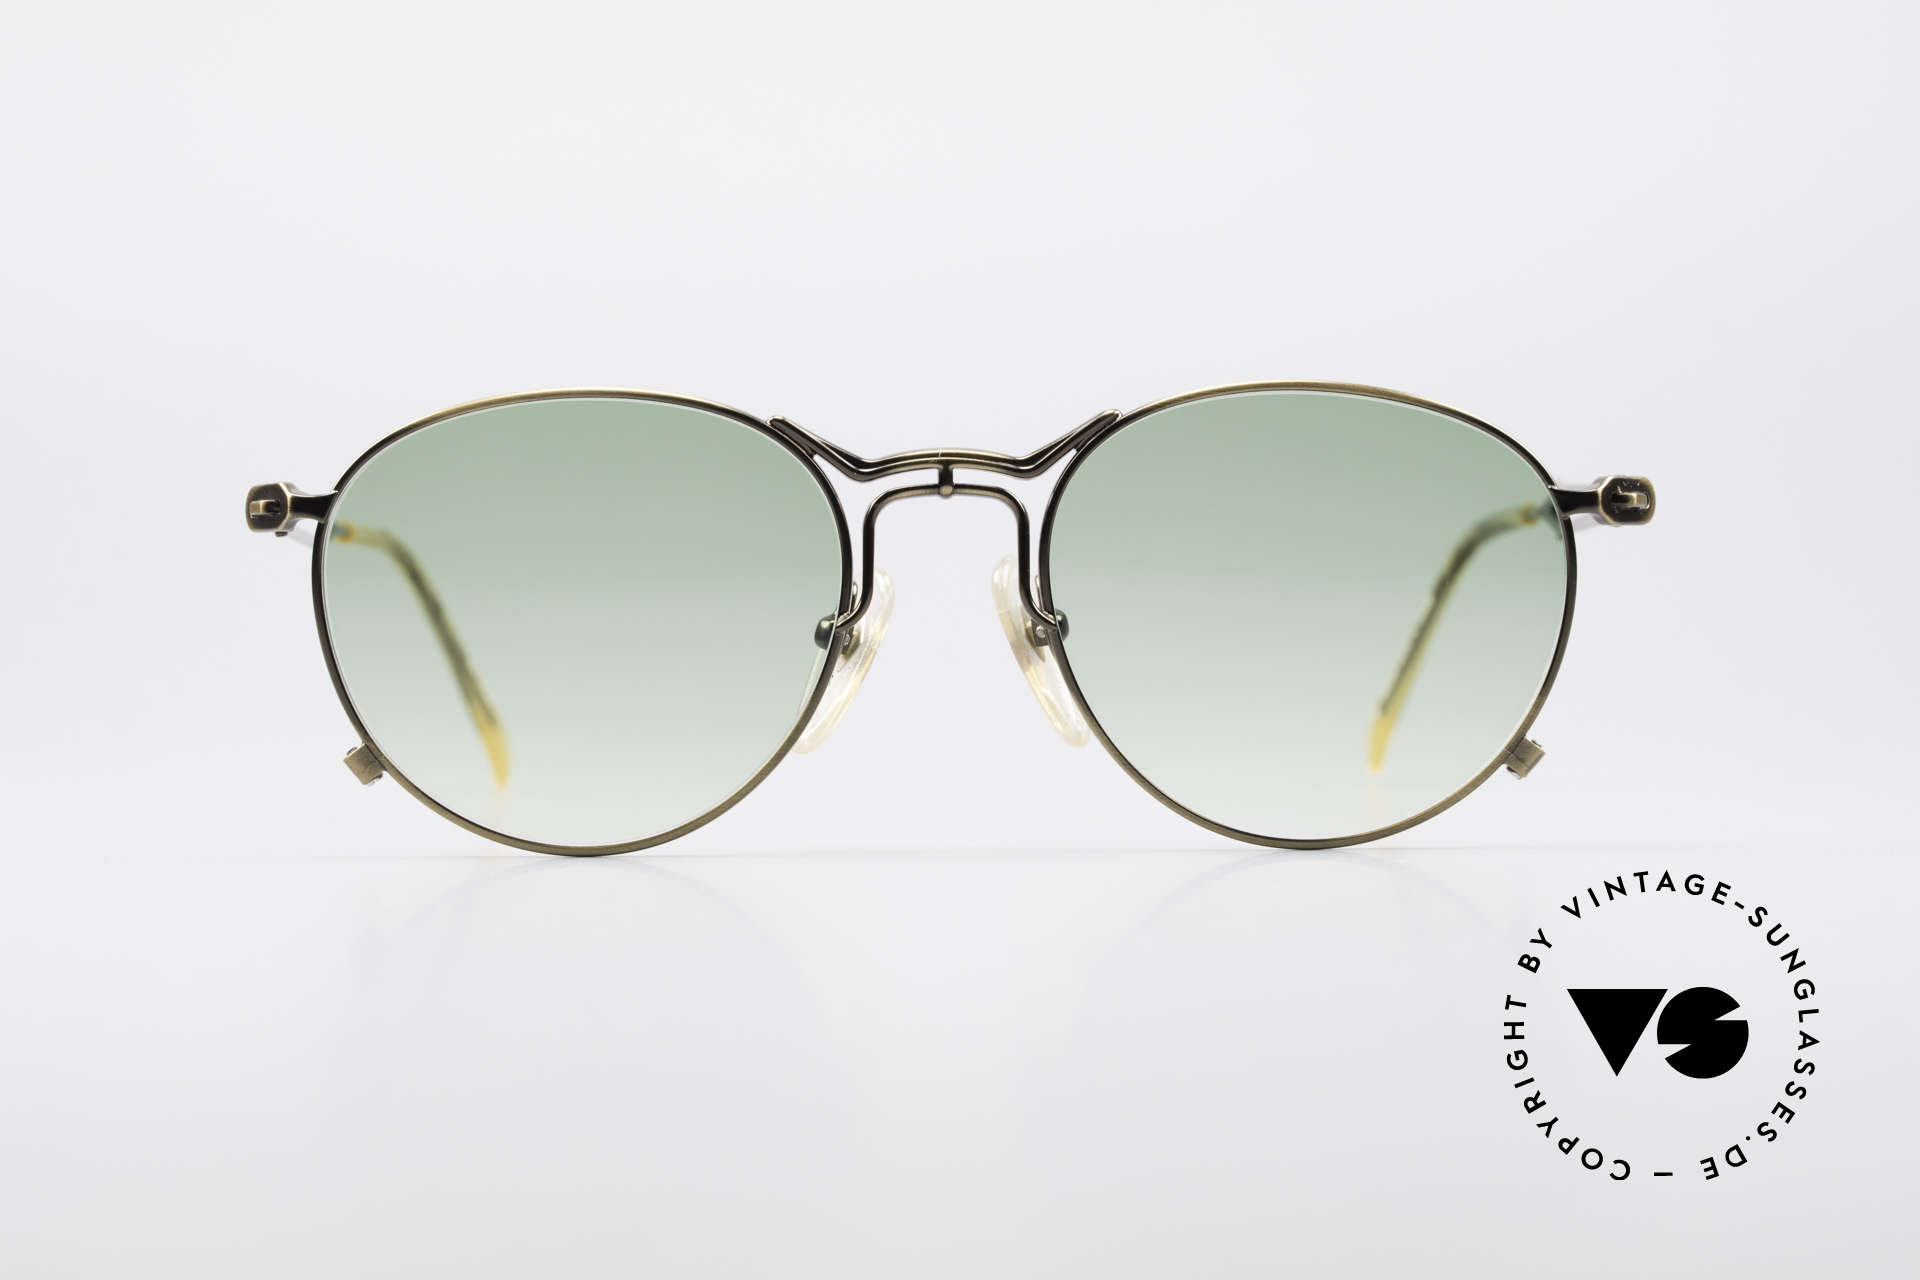 Jean Paul Gaultier 55-2177 True Vintage No Retro Frame, costly, unique frame finish: METALLIC SMOKE GOLD, Made for Men and Women